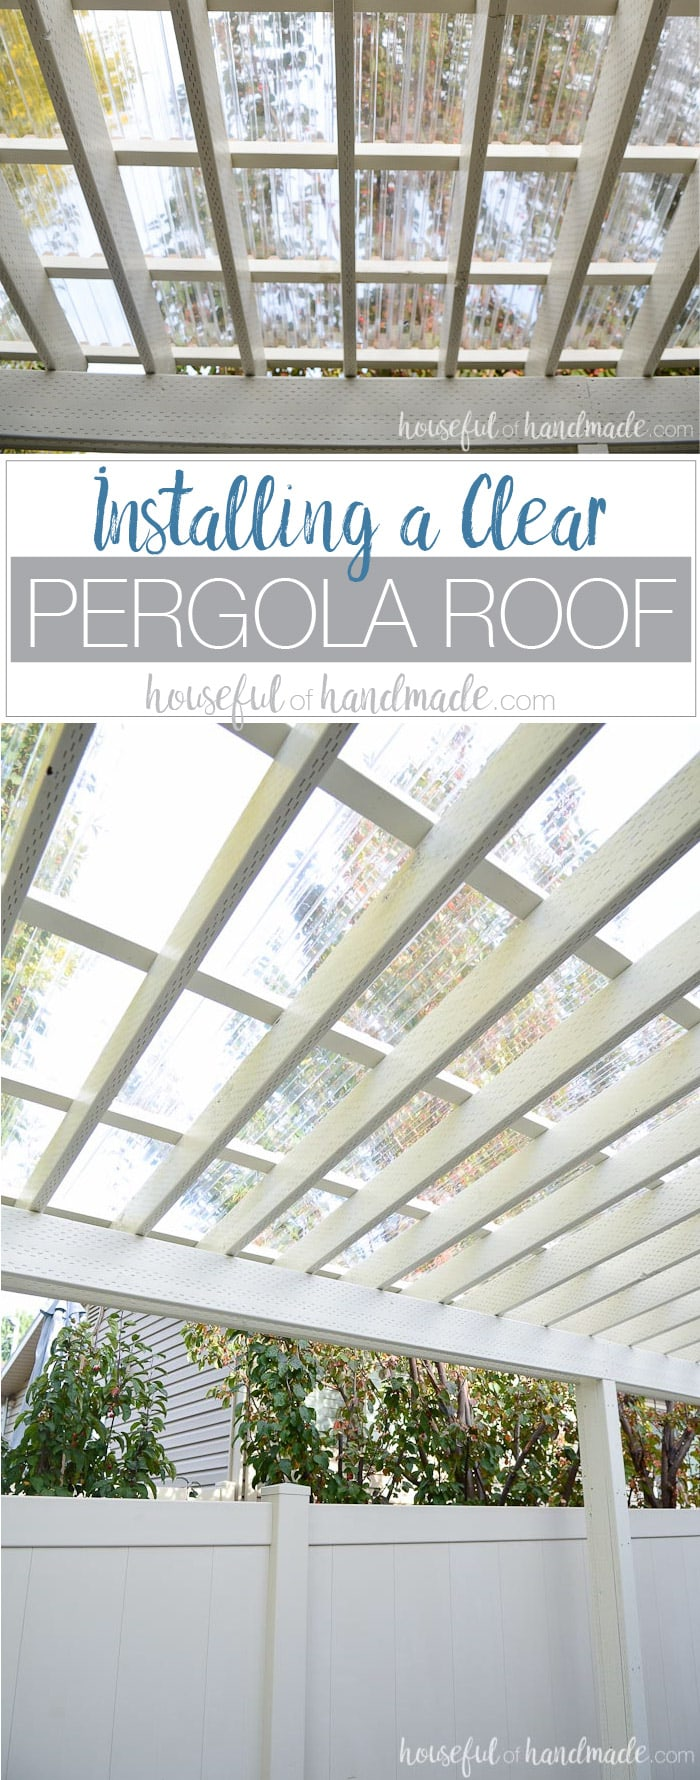 Turn your patio pergola into a three season porch with a new roof! Adding a - Installing A Clear Pergola Roof - Houseful Of Handmade